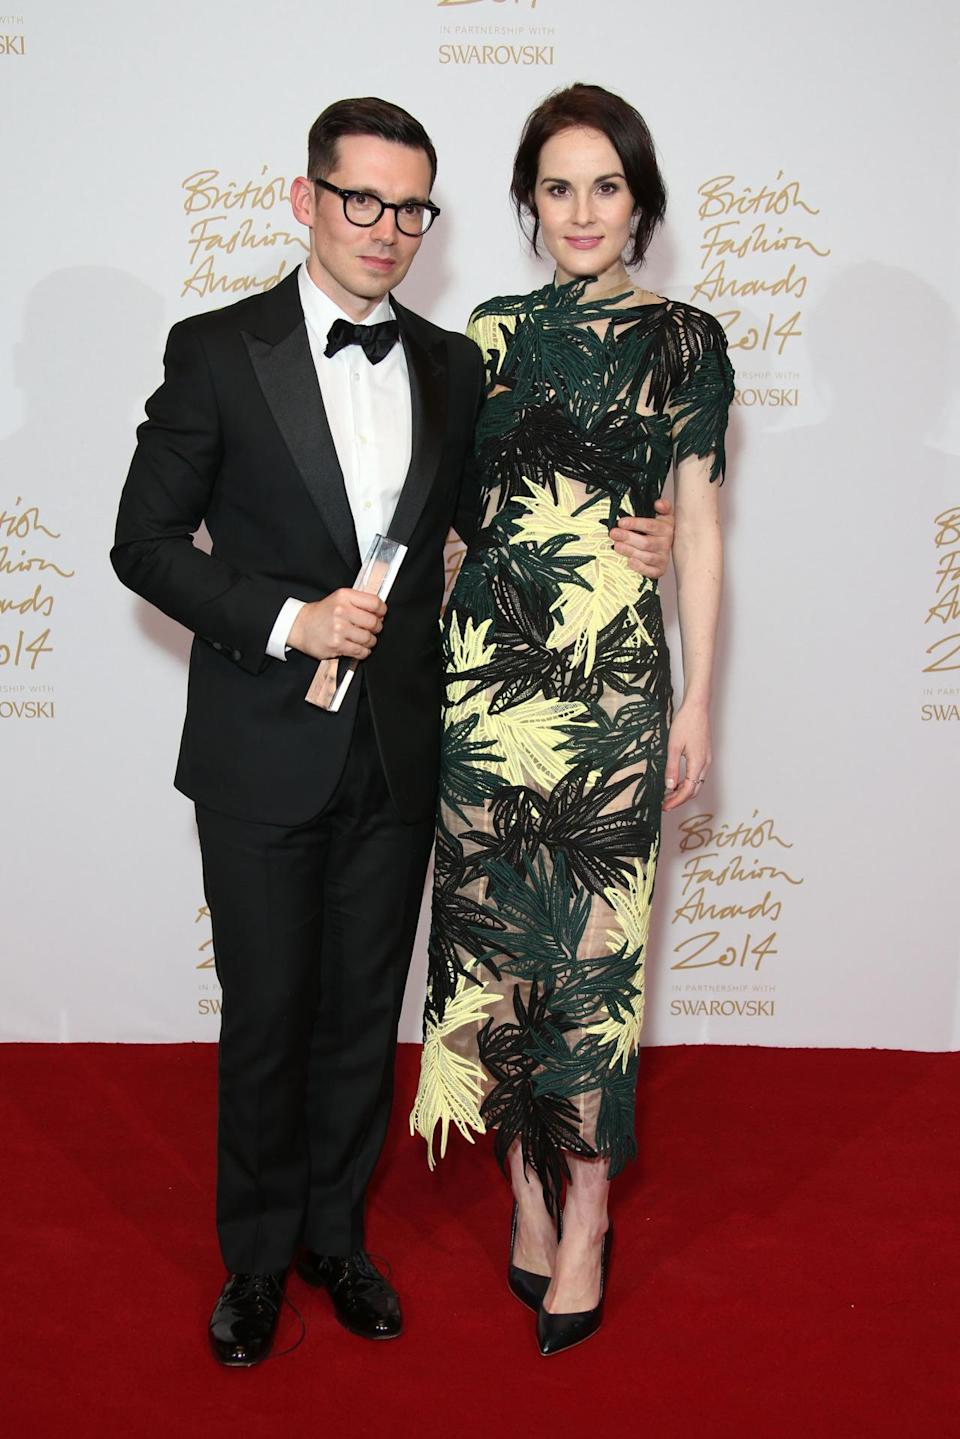 Michelle Dockery obviosuly wore Erdem to present none other than Erdem with the Womenswear Award.